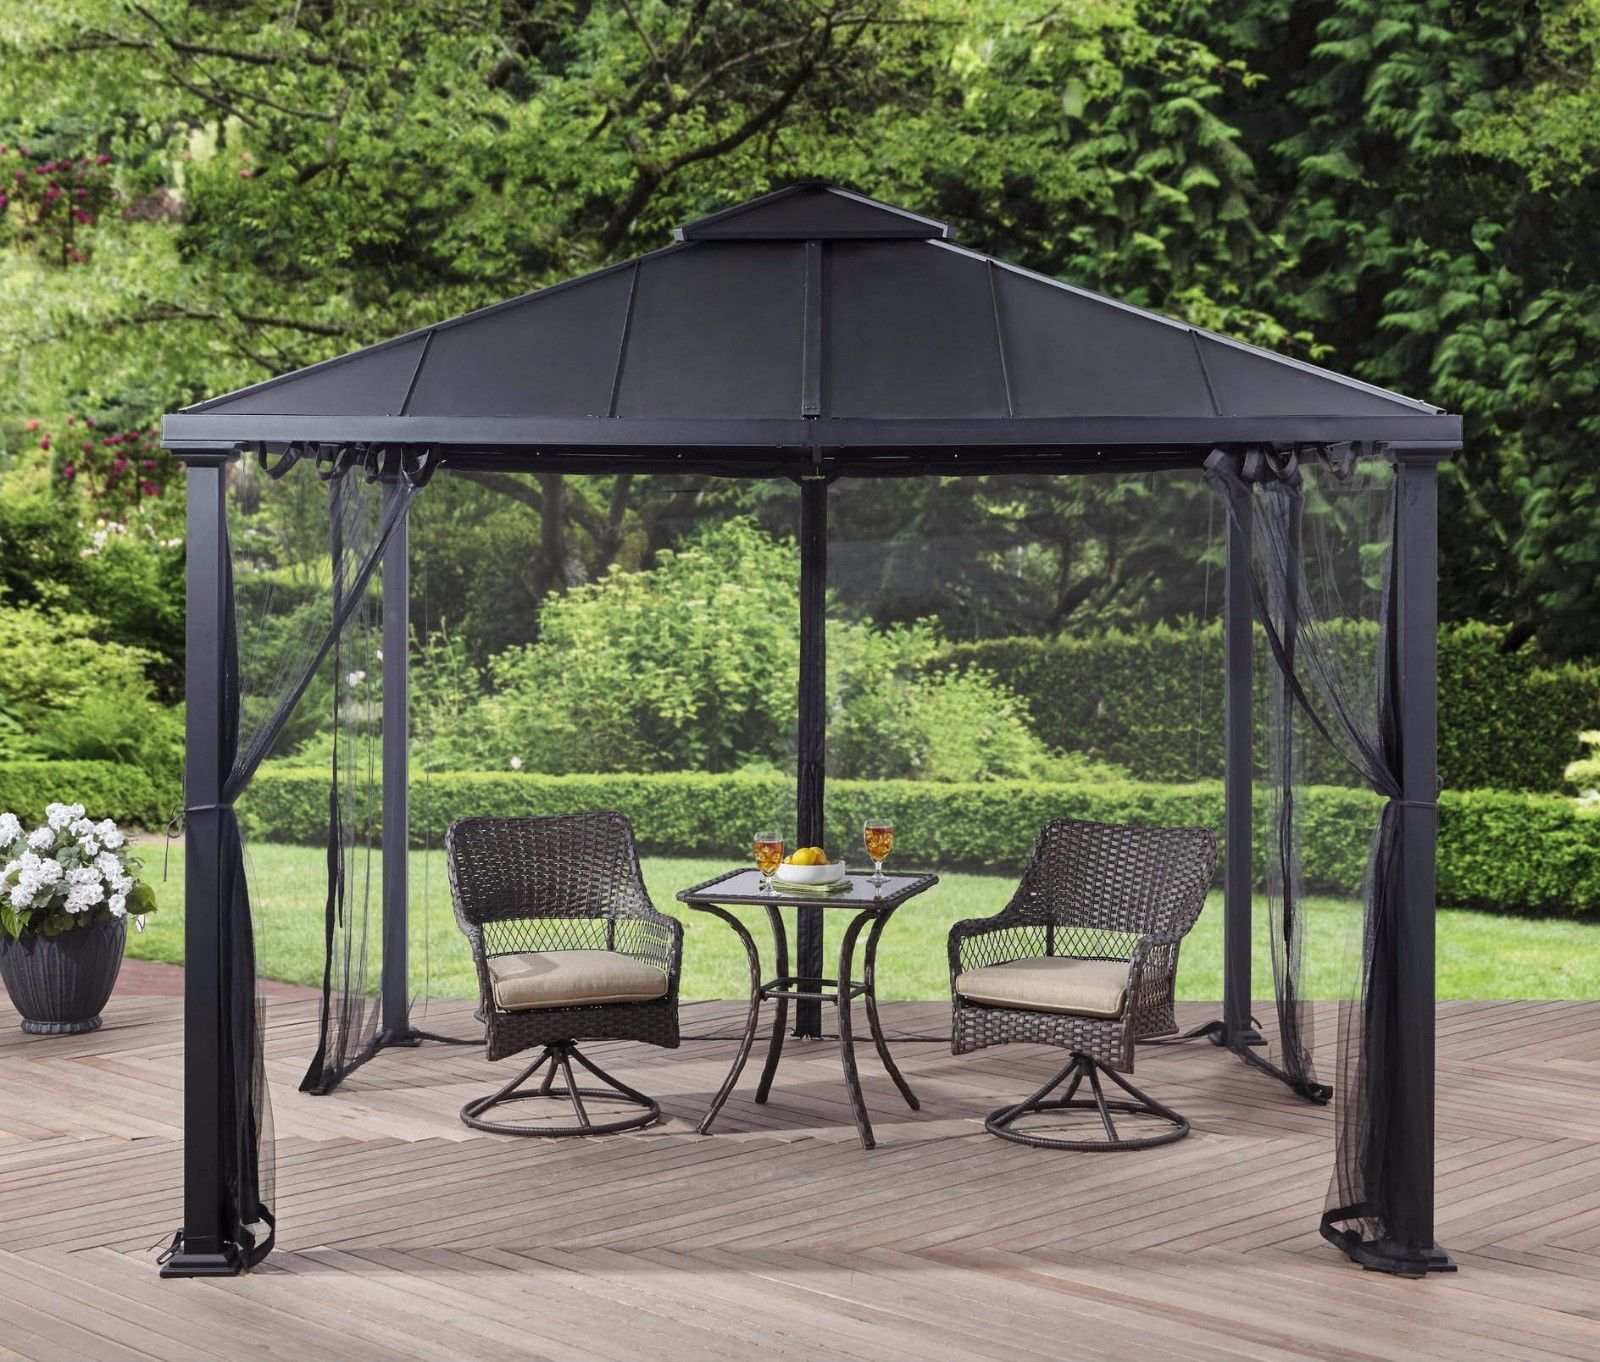 Metal roof gazebo with netting hard top pergola canopy 10 - Small gazebo with netting ...